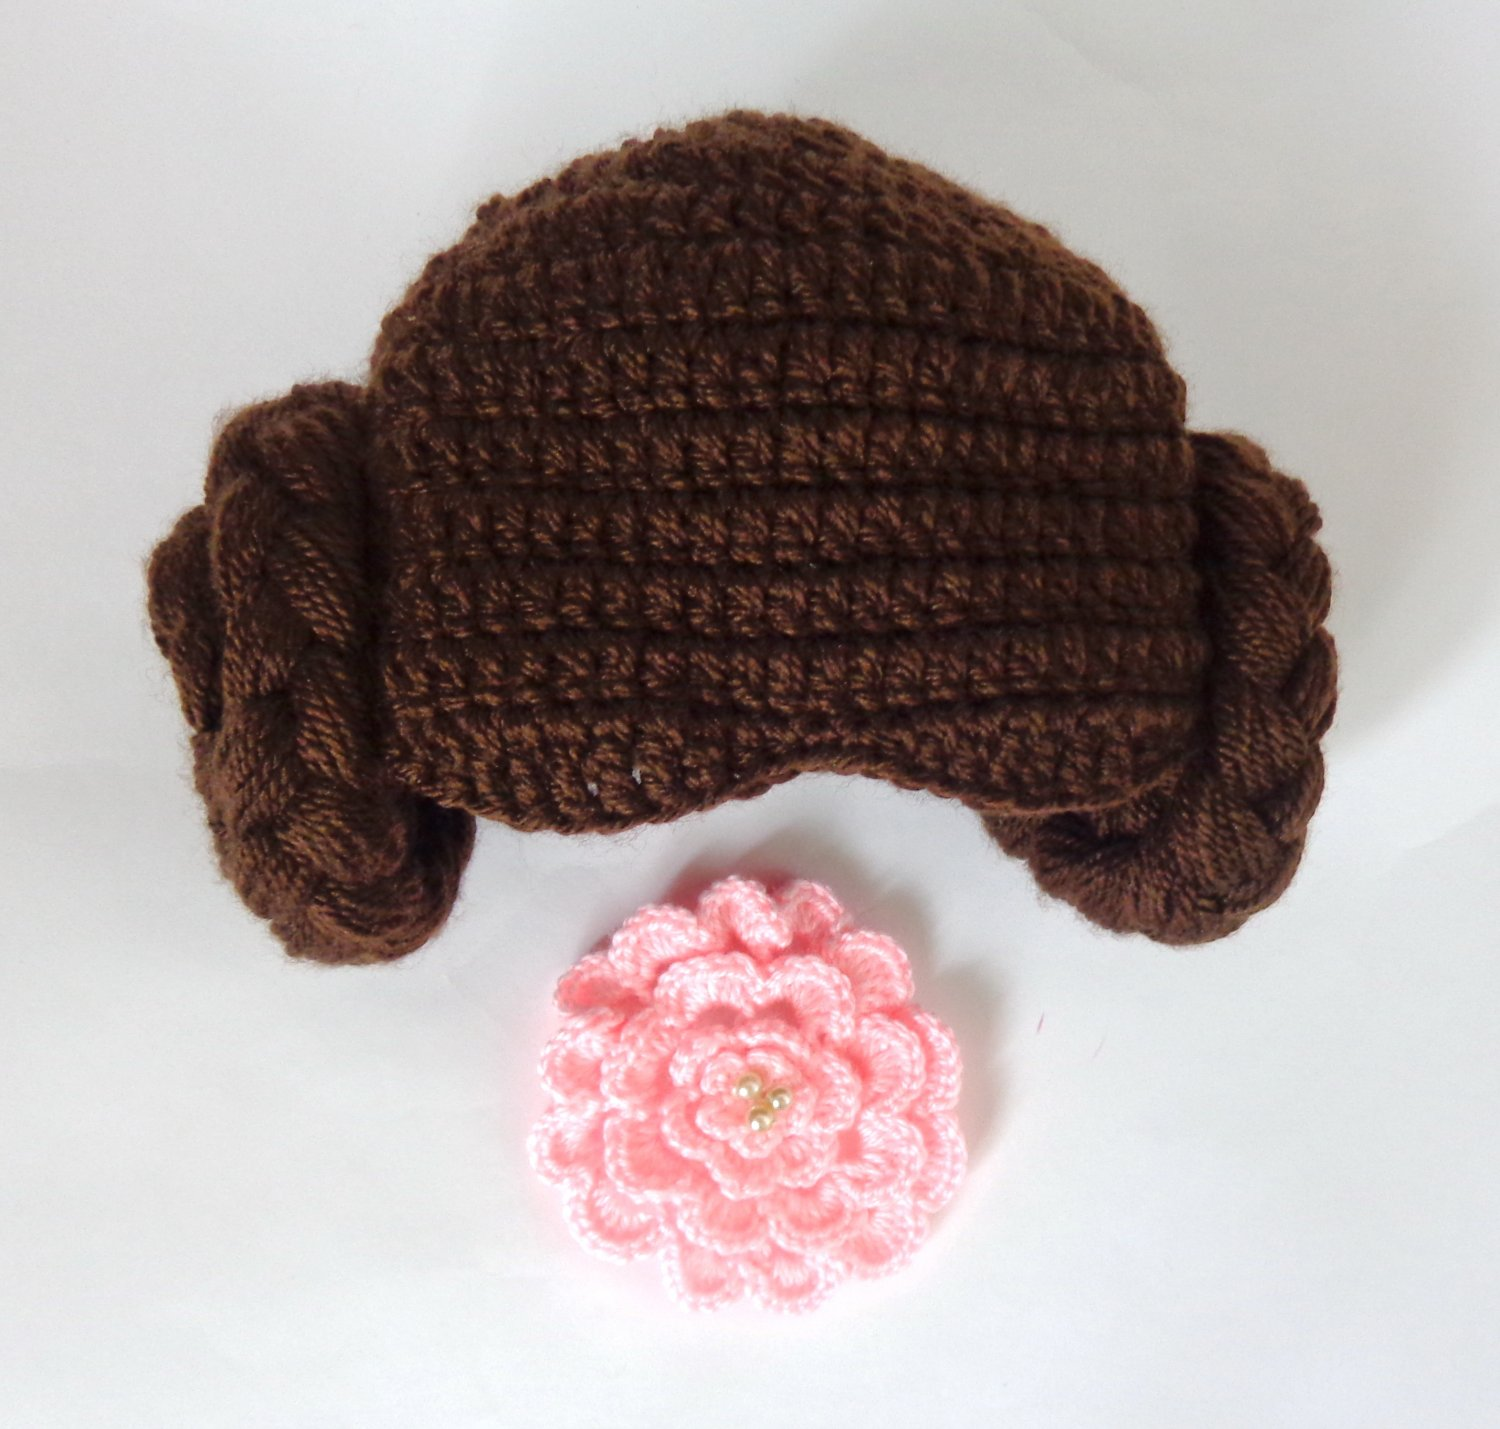 Princess Leia Crocheted Baby Hat From Star Wars Princess Queen Hat Wig - 3-10 years